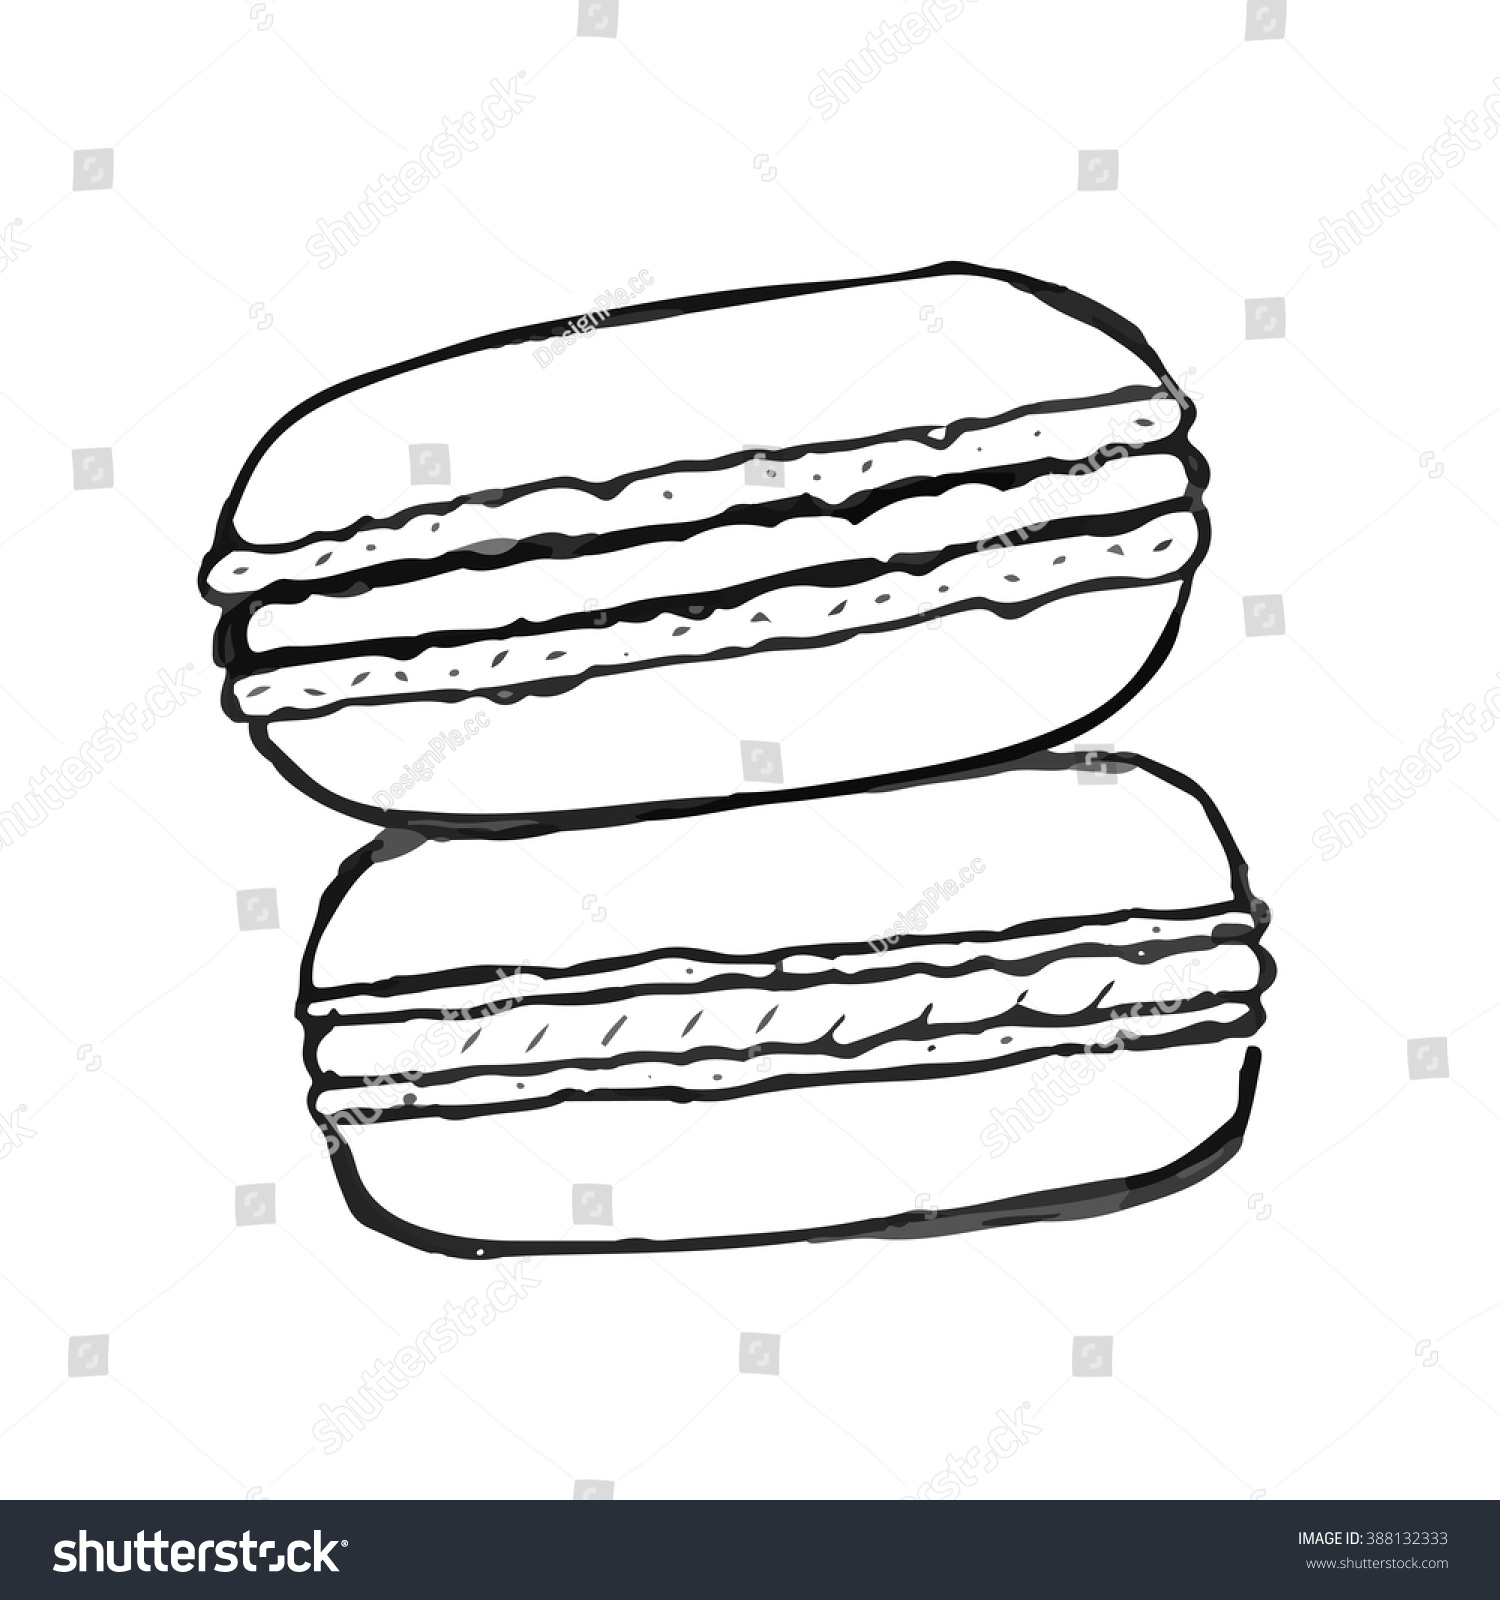 Pics For Gt Macaron Drawing